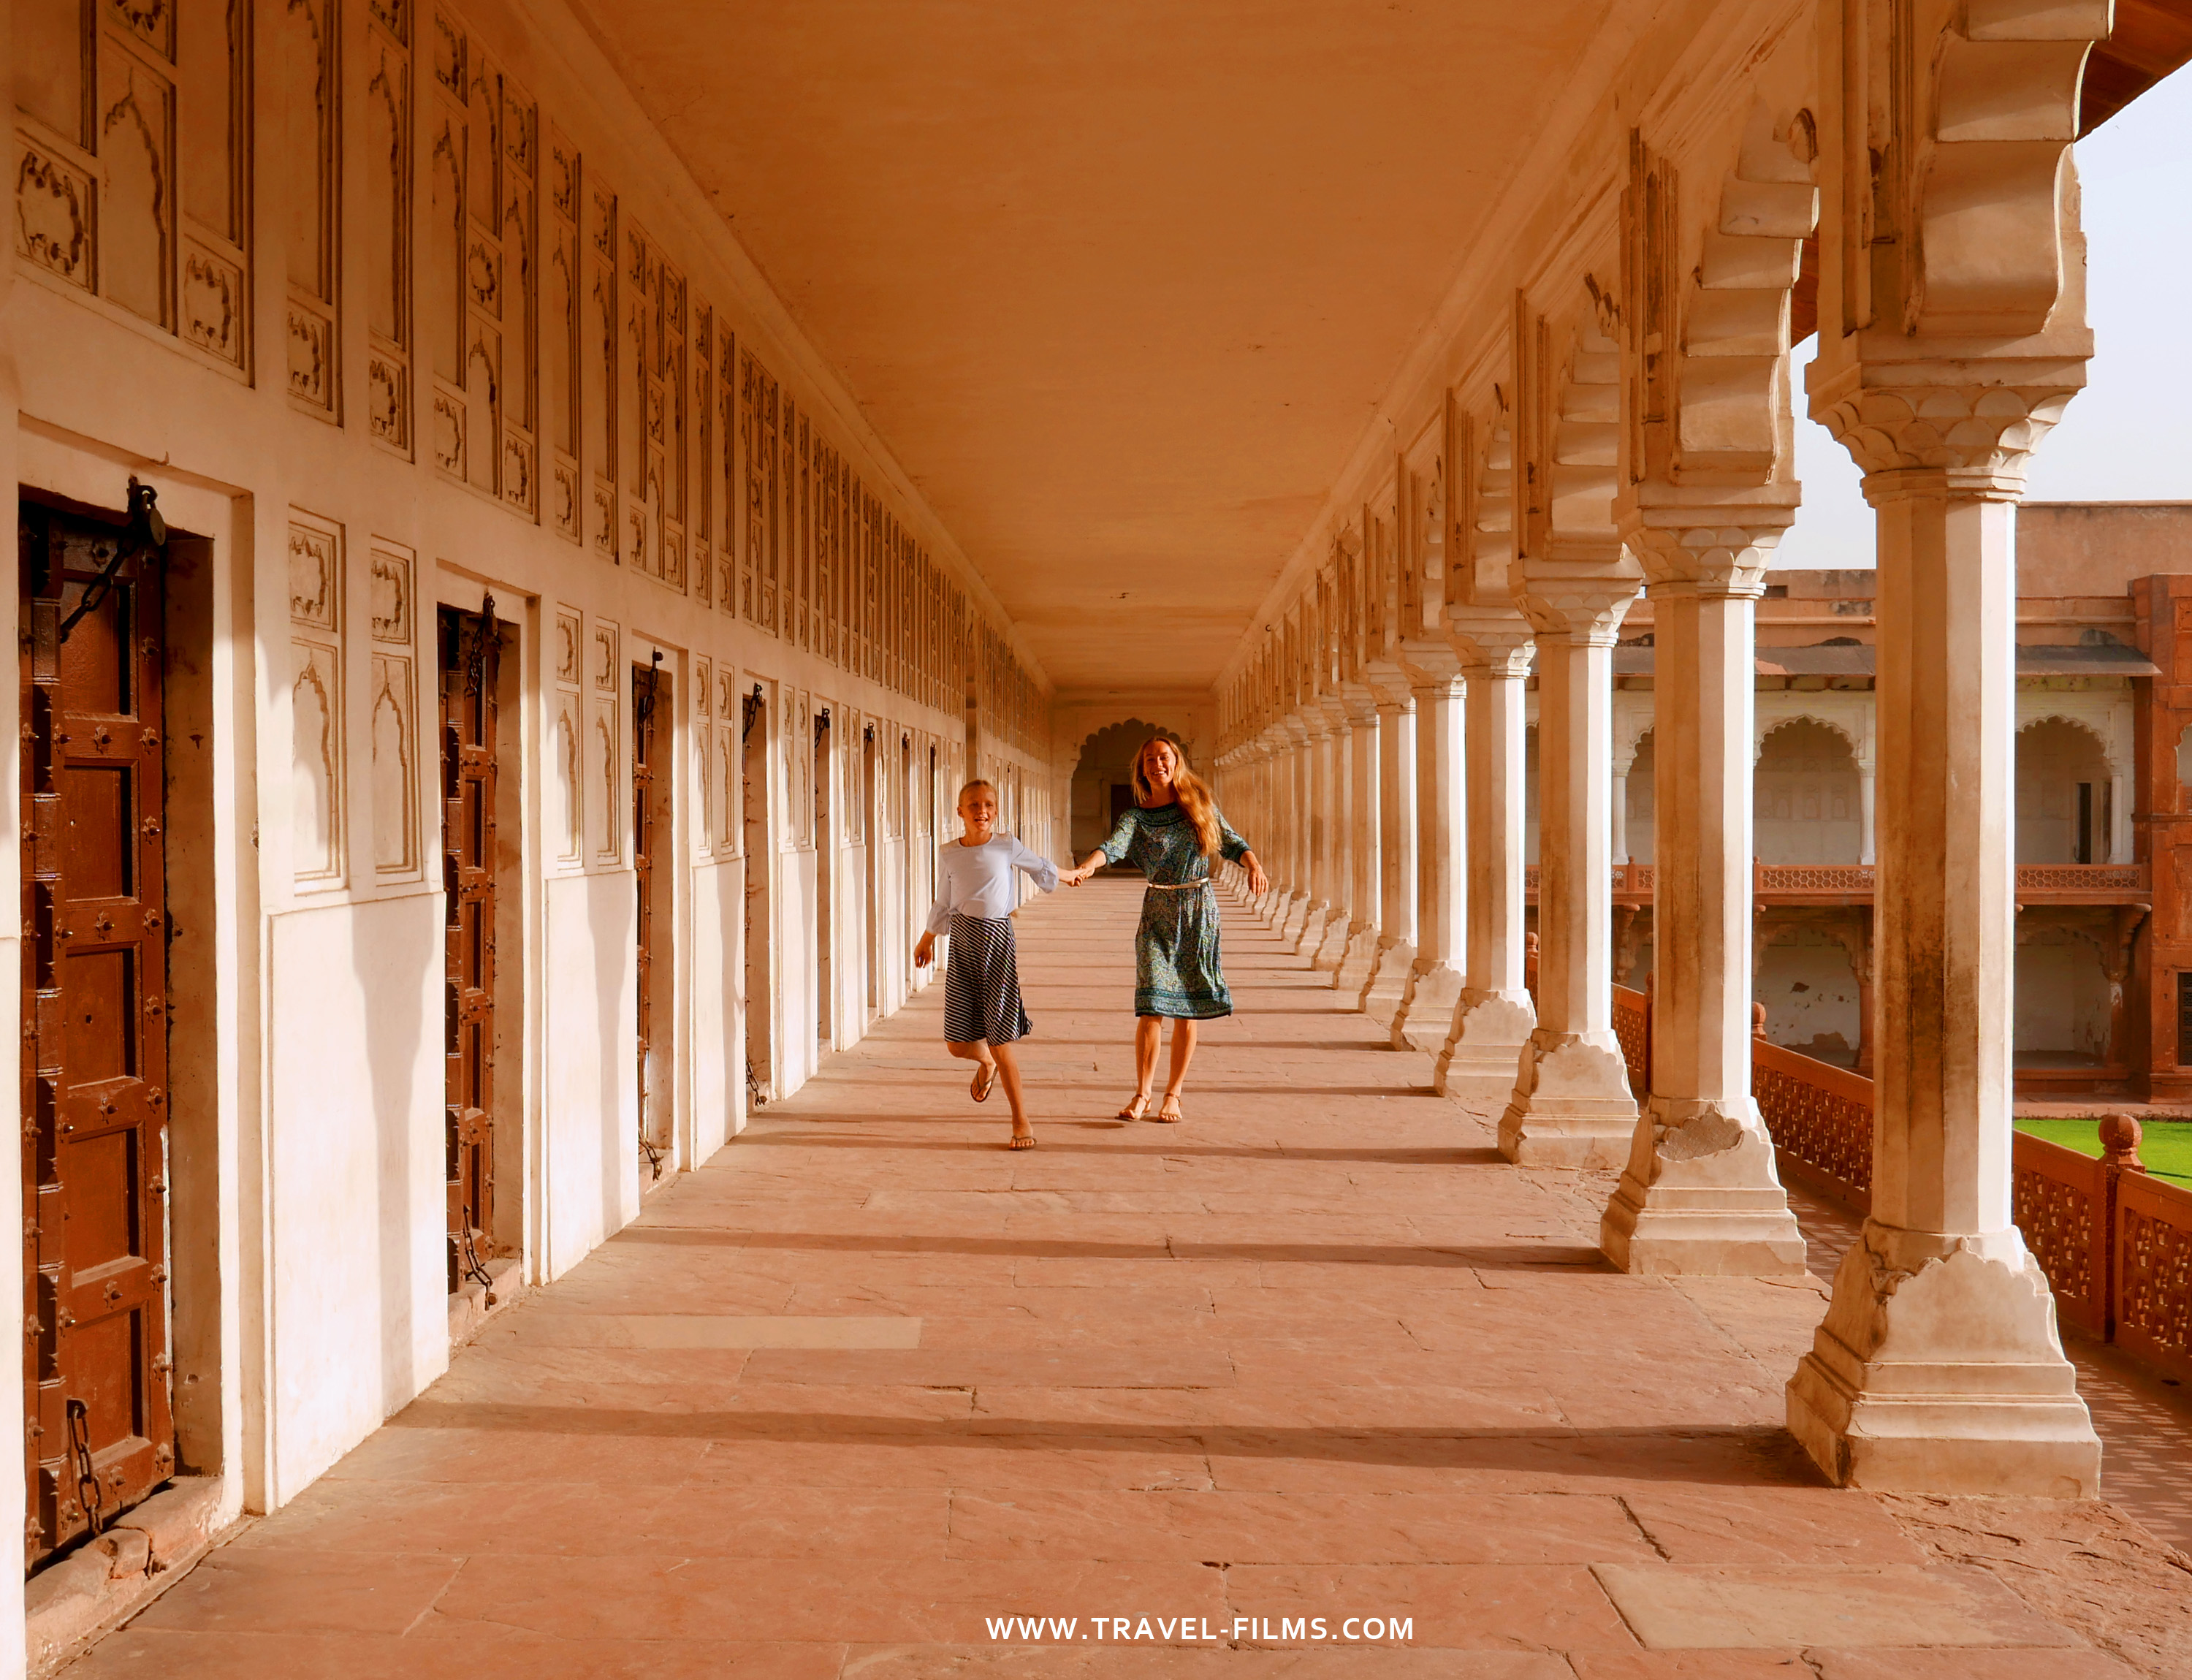 Agra travel films India